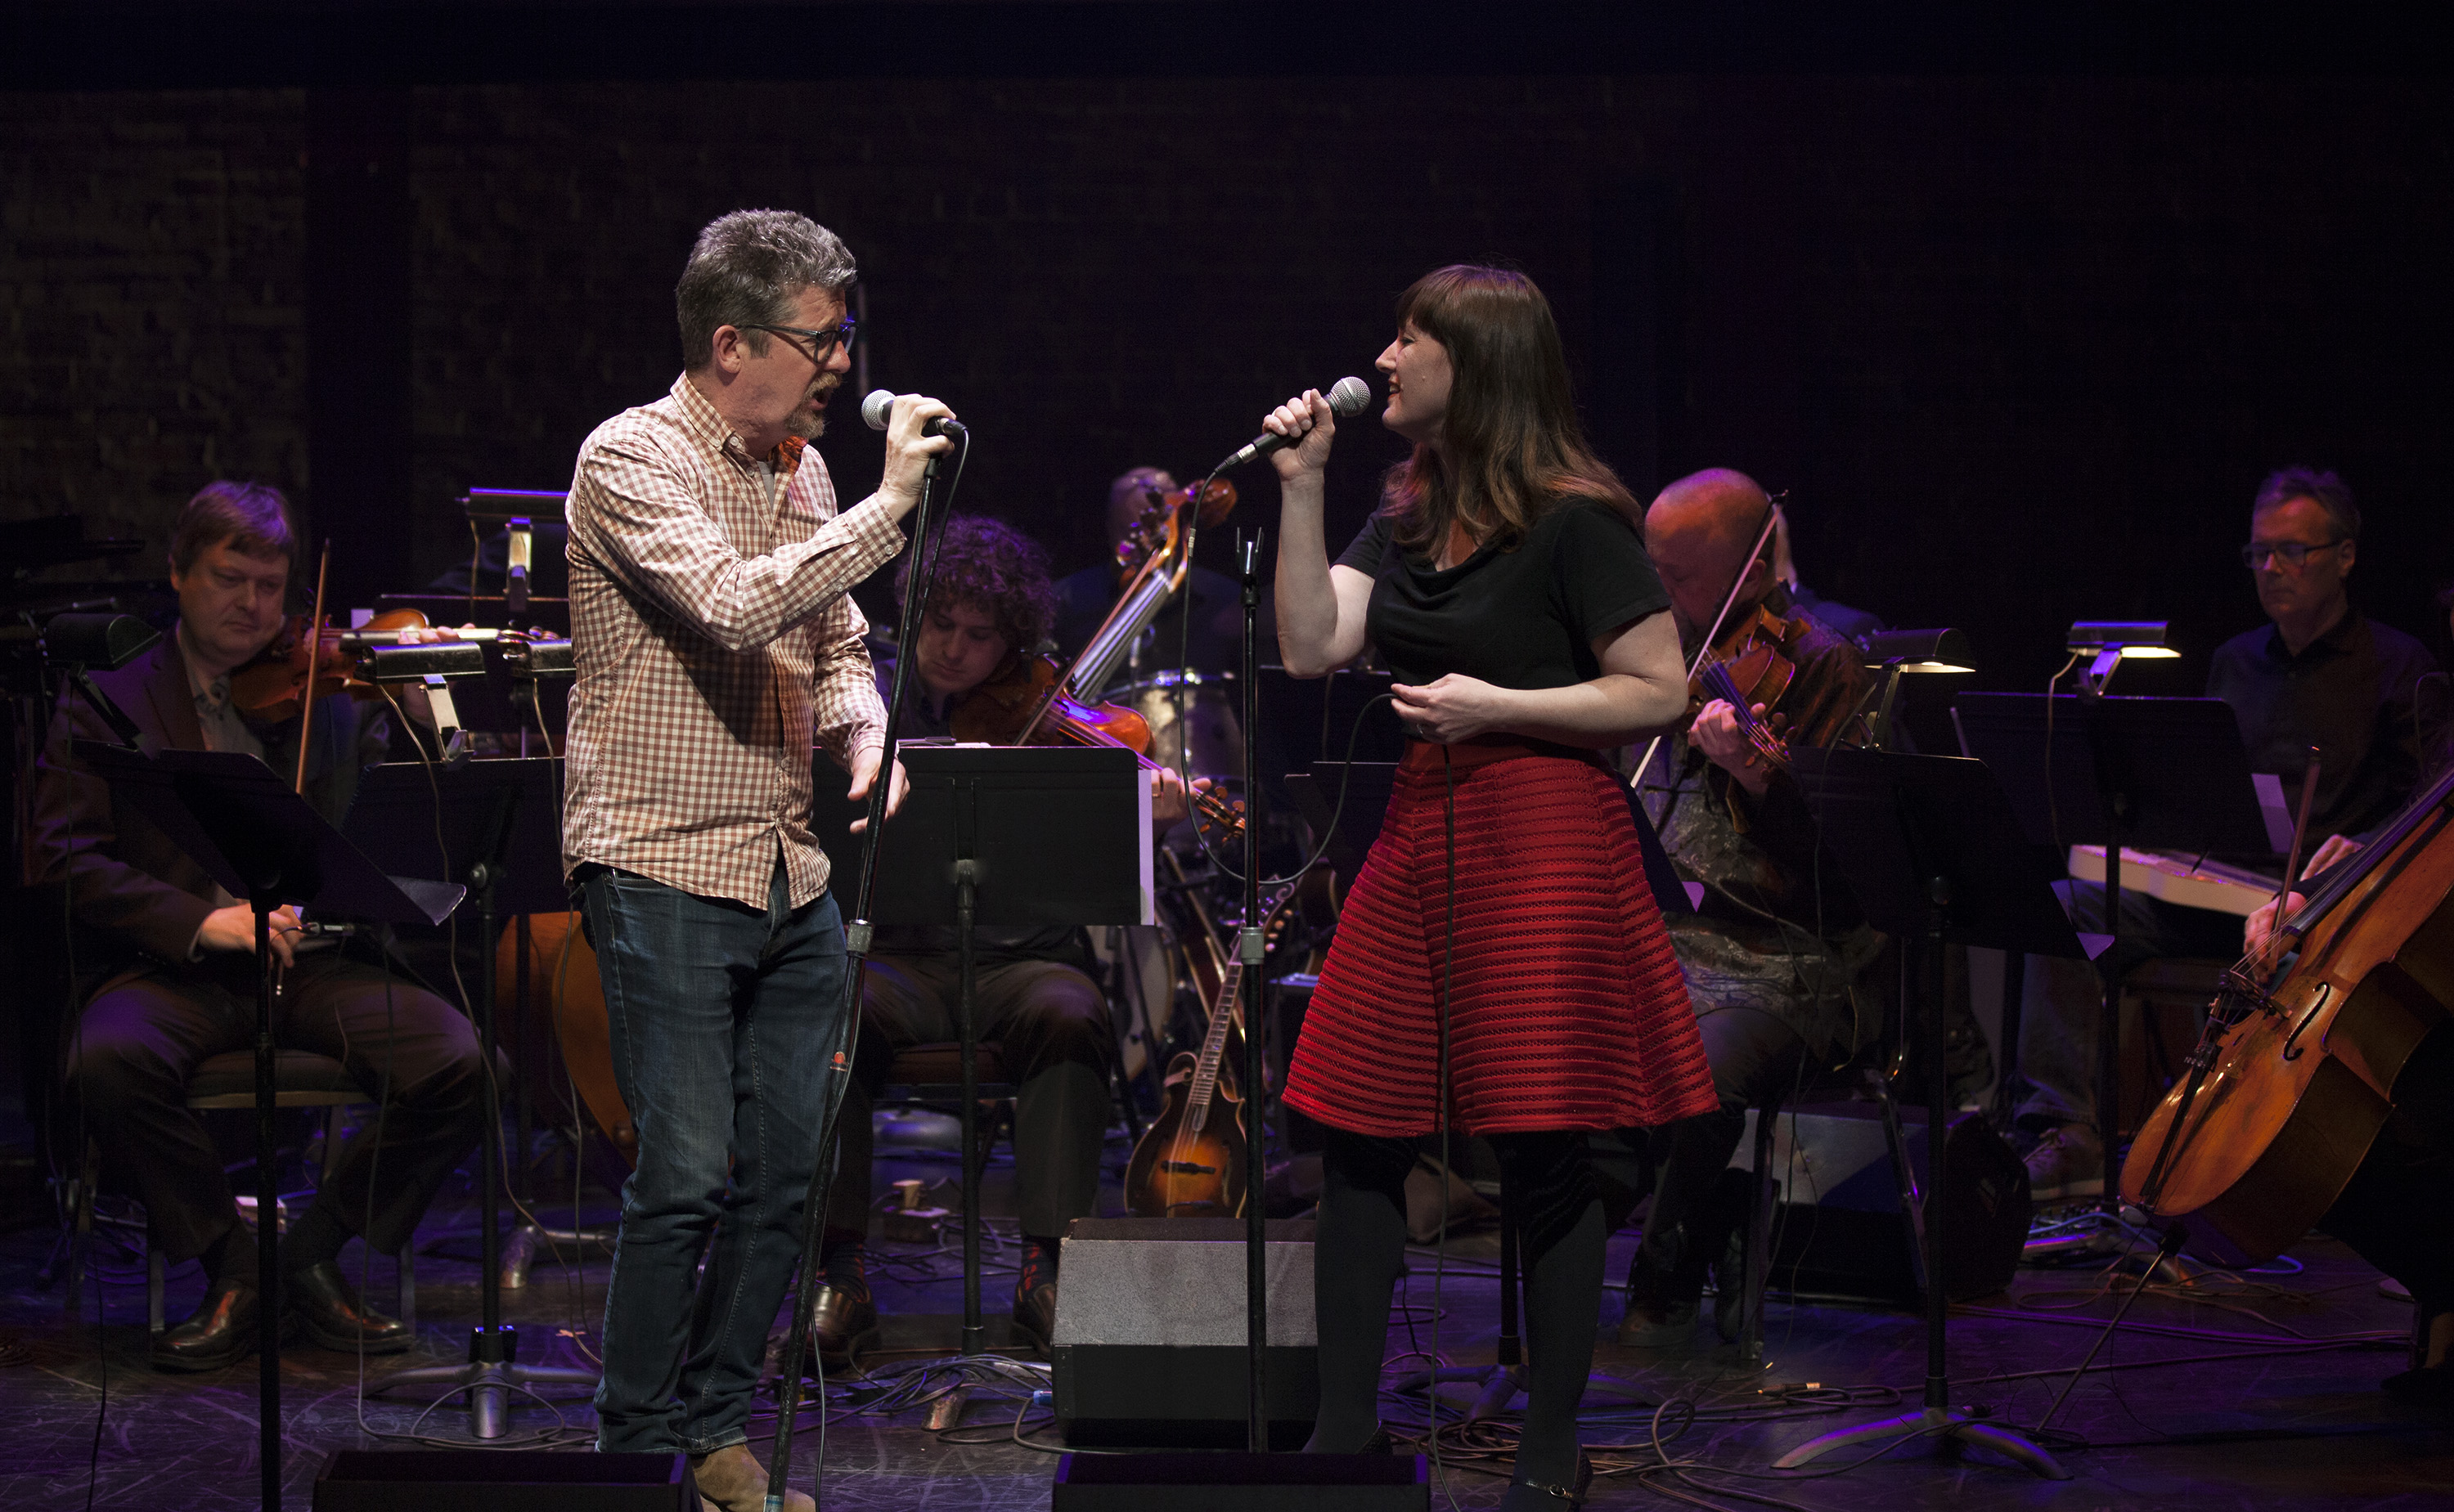 Singers Andy Maize and Suzie Ungerlieder sing in Art of Time Ensemble's Doghouse Roses: The Words and Music of Steve Earle.